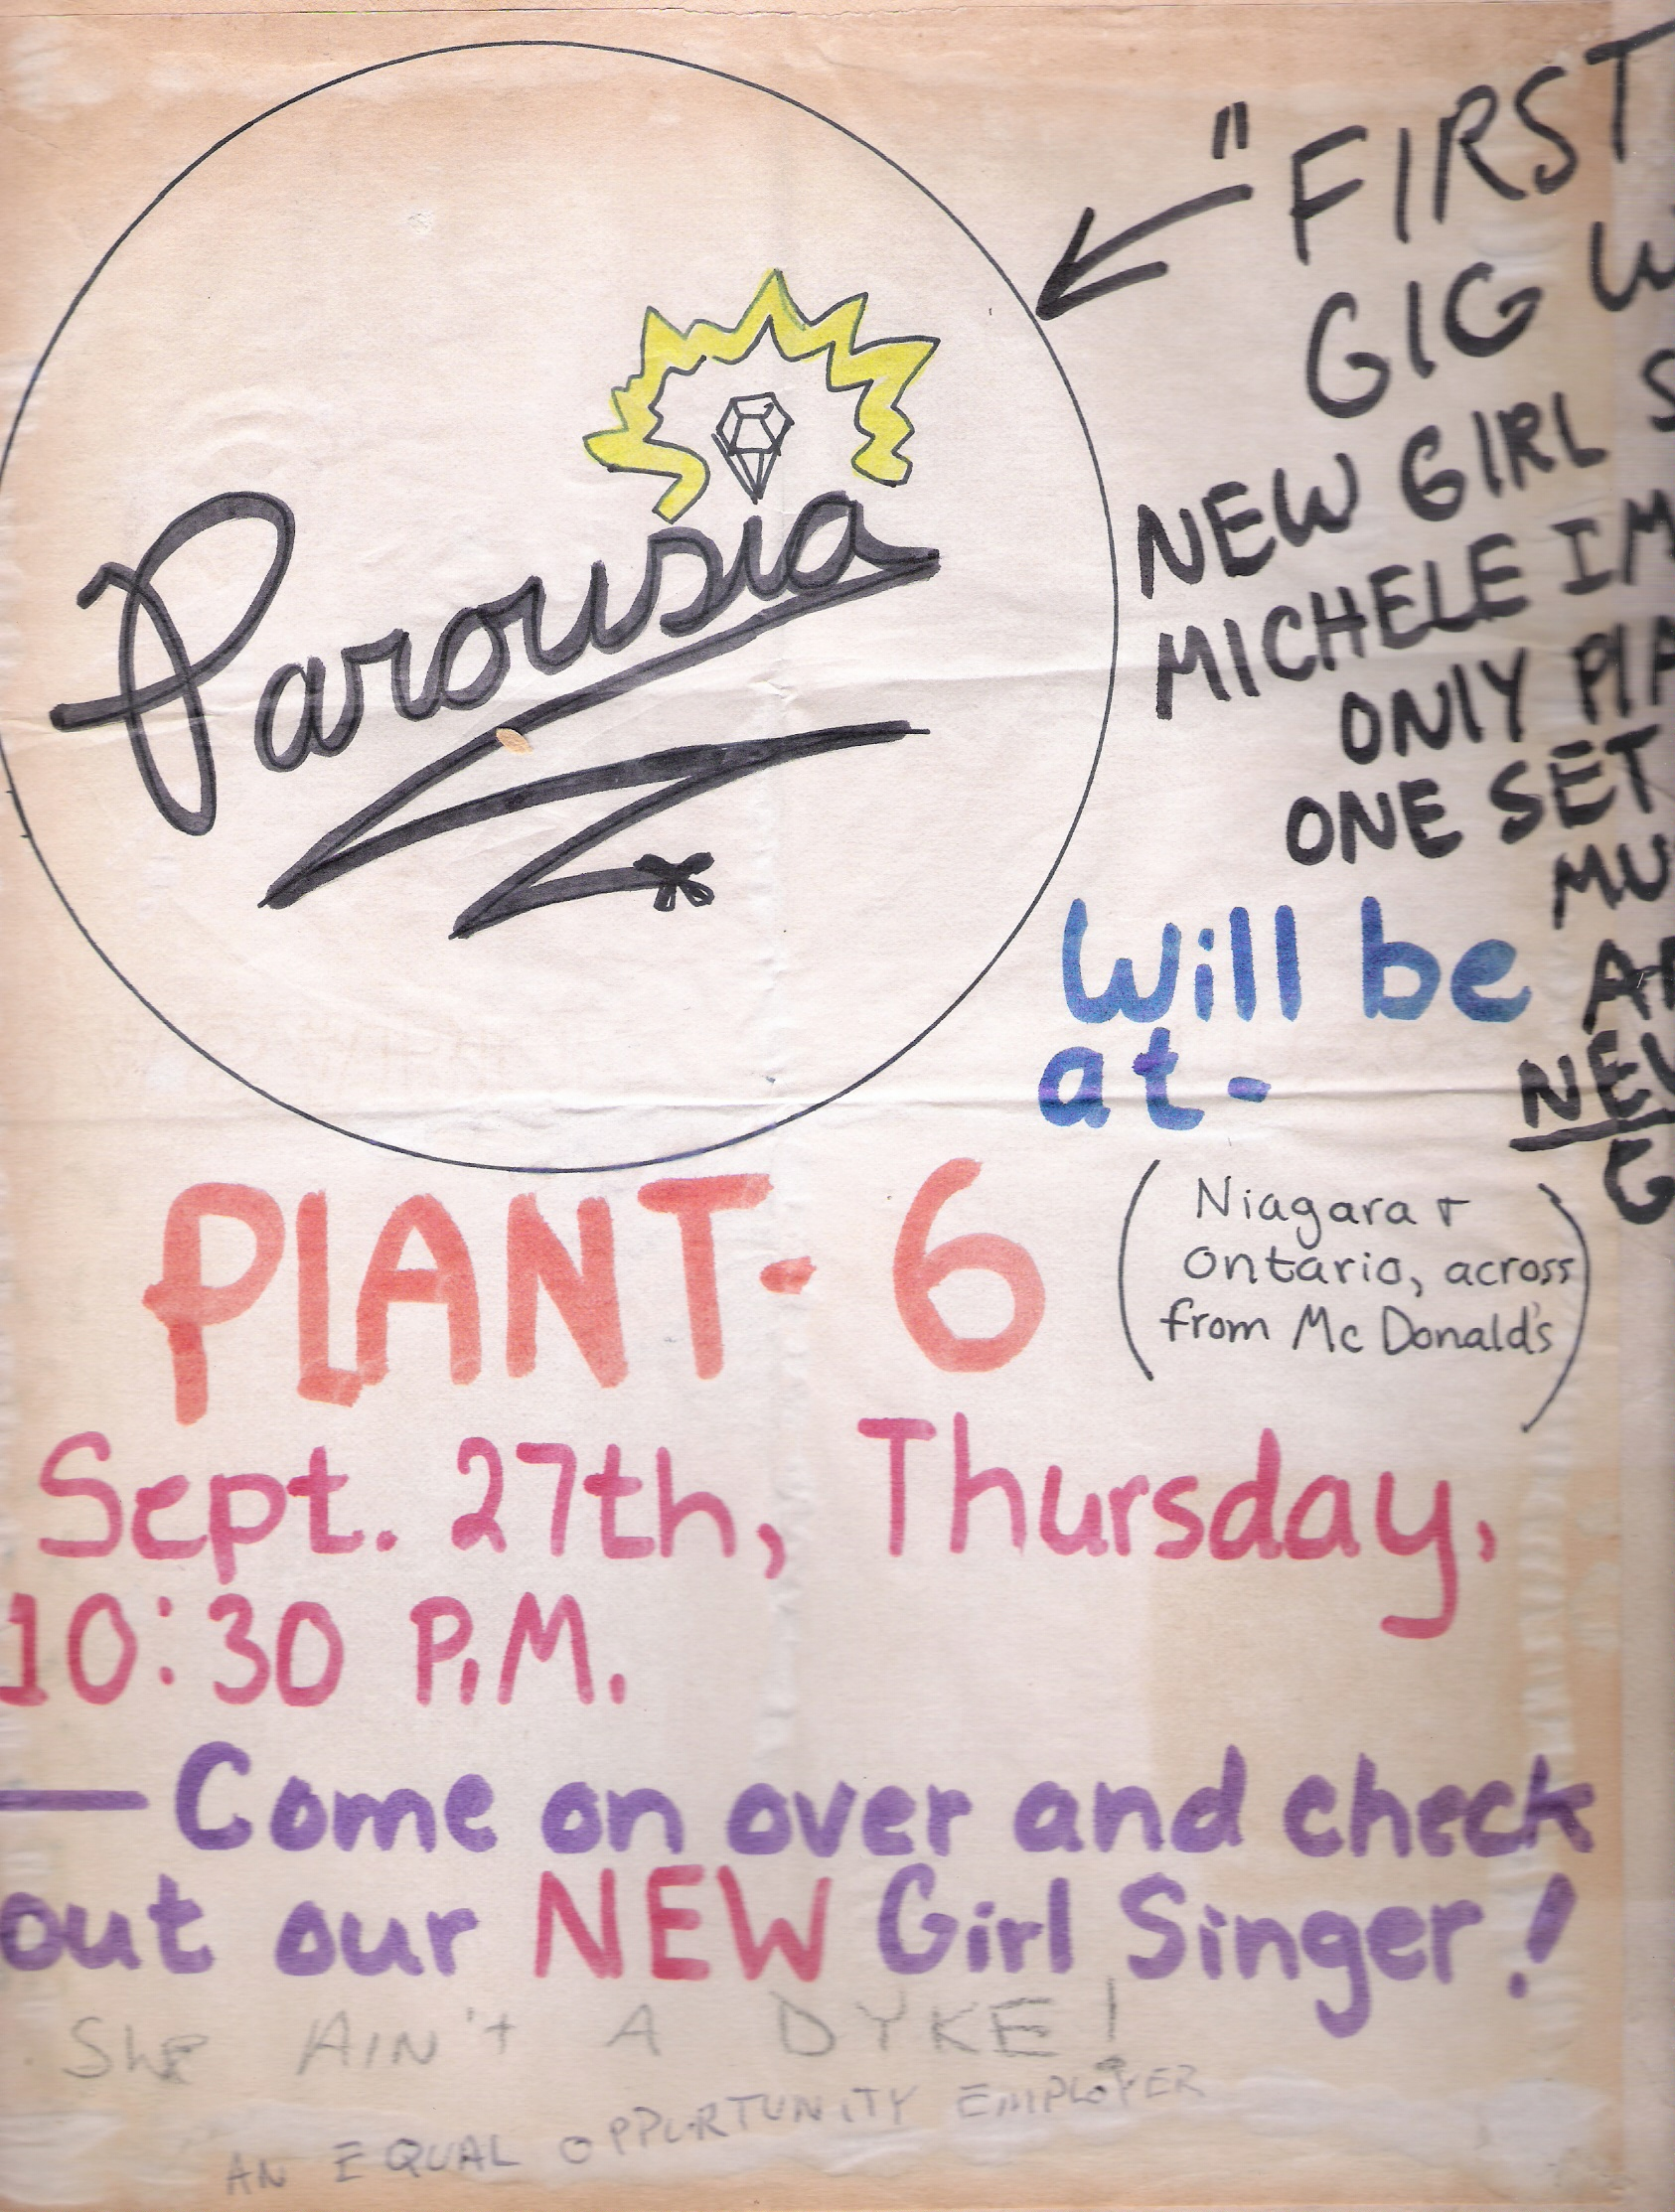 Parousia Flyer for Plant 6 Show at 2179 Niagara St. on 09/27/79